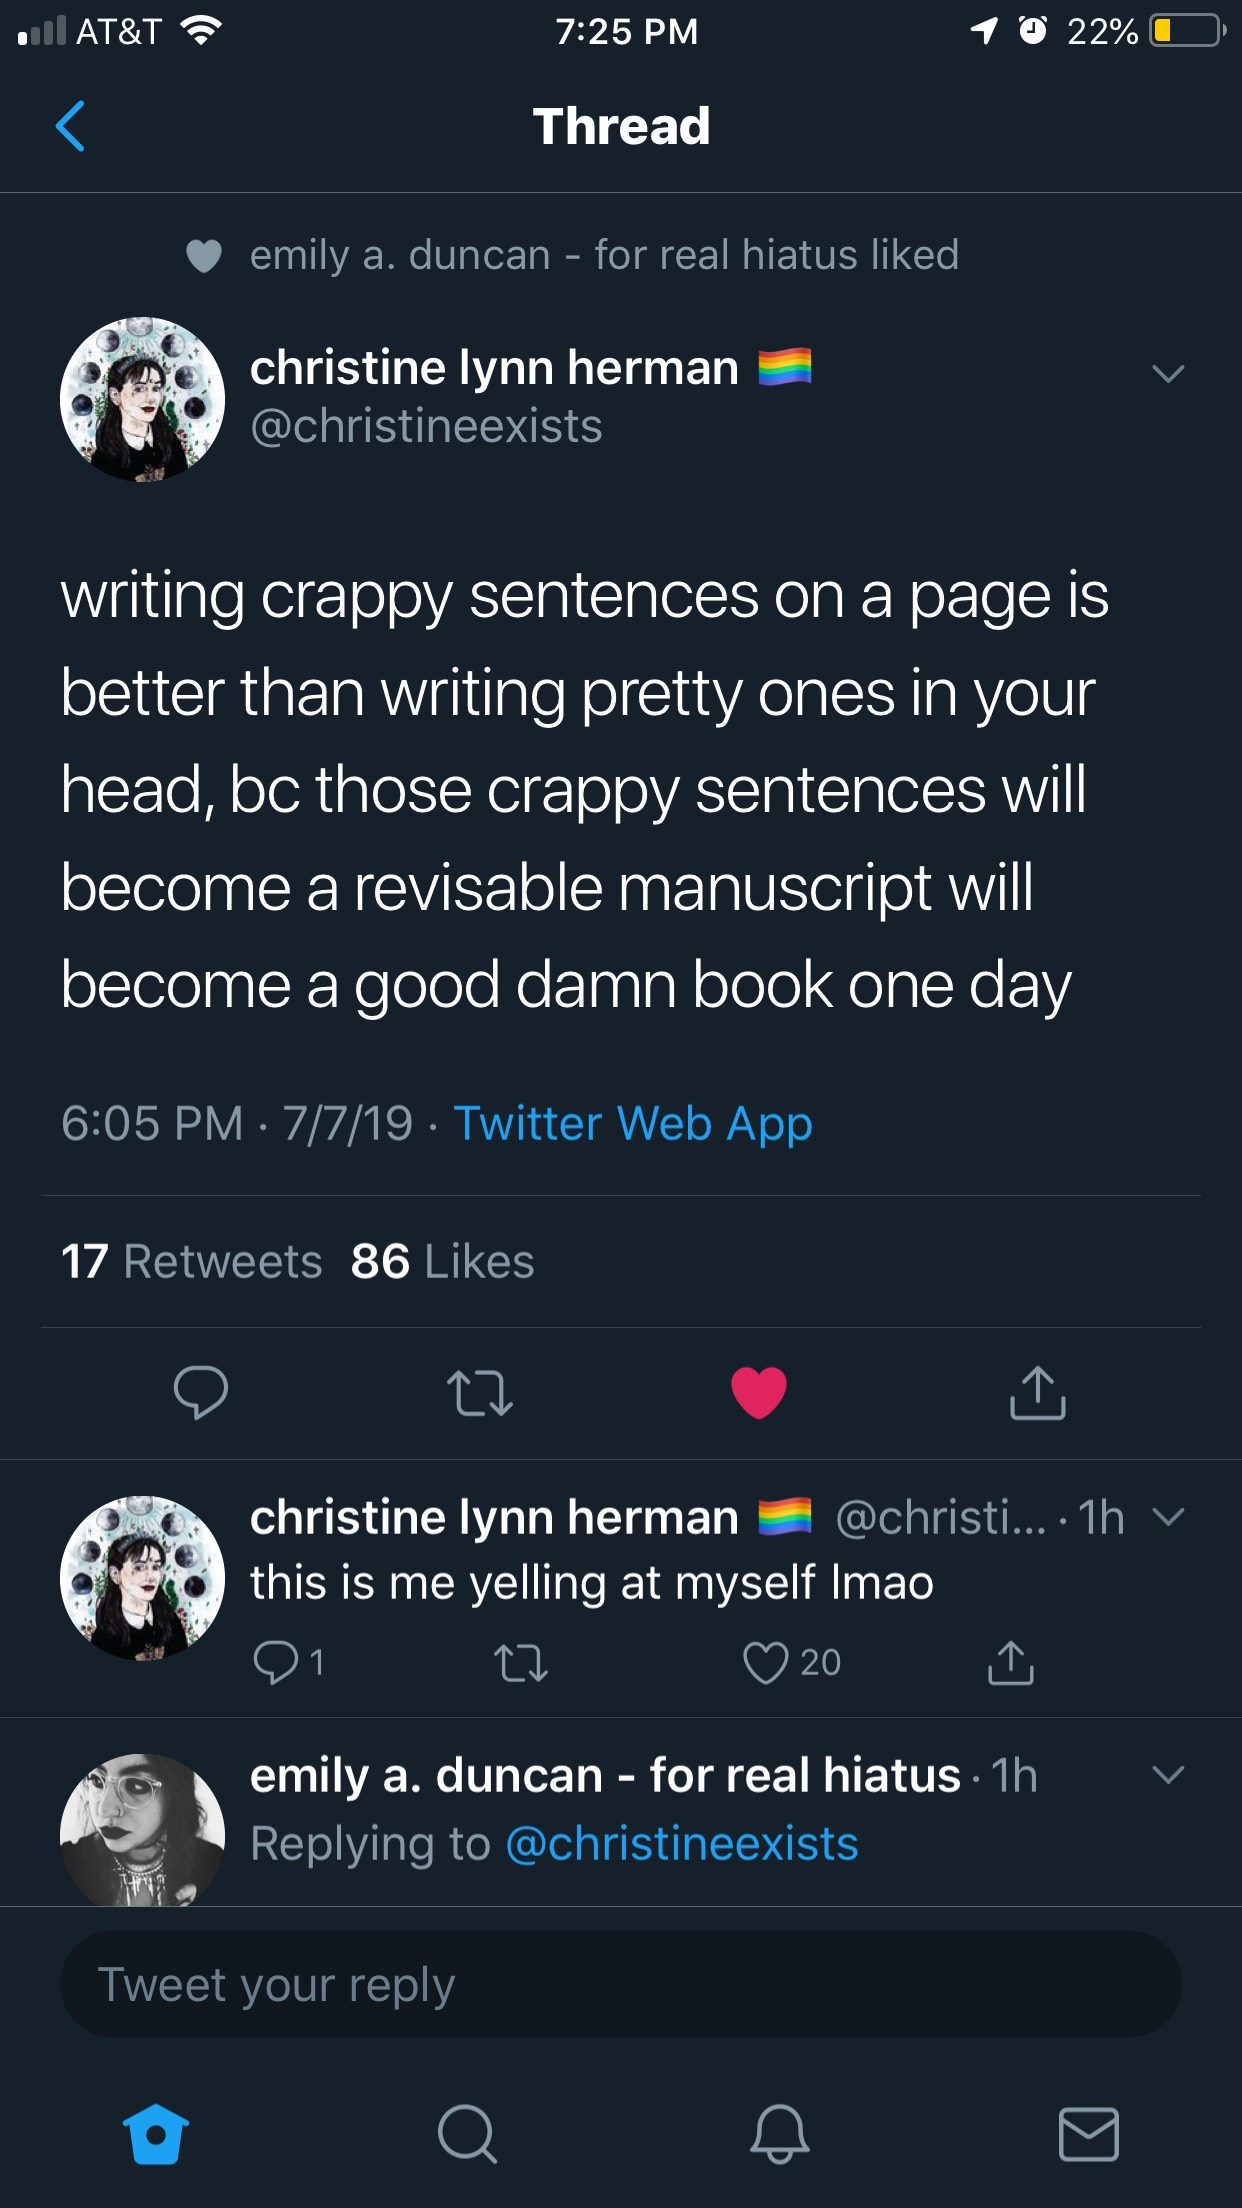 Christine Lynn Herman Tweet